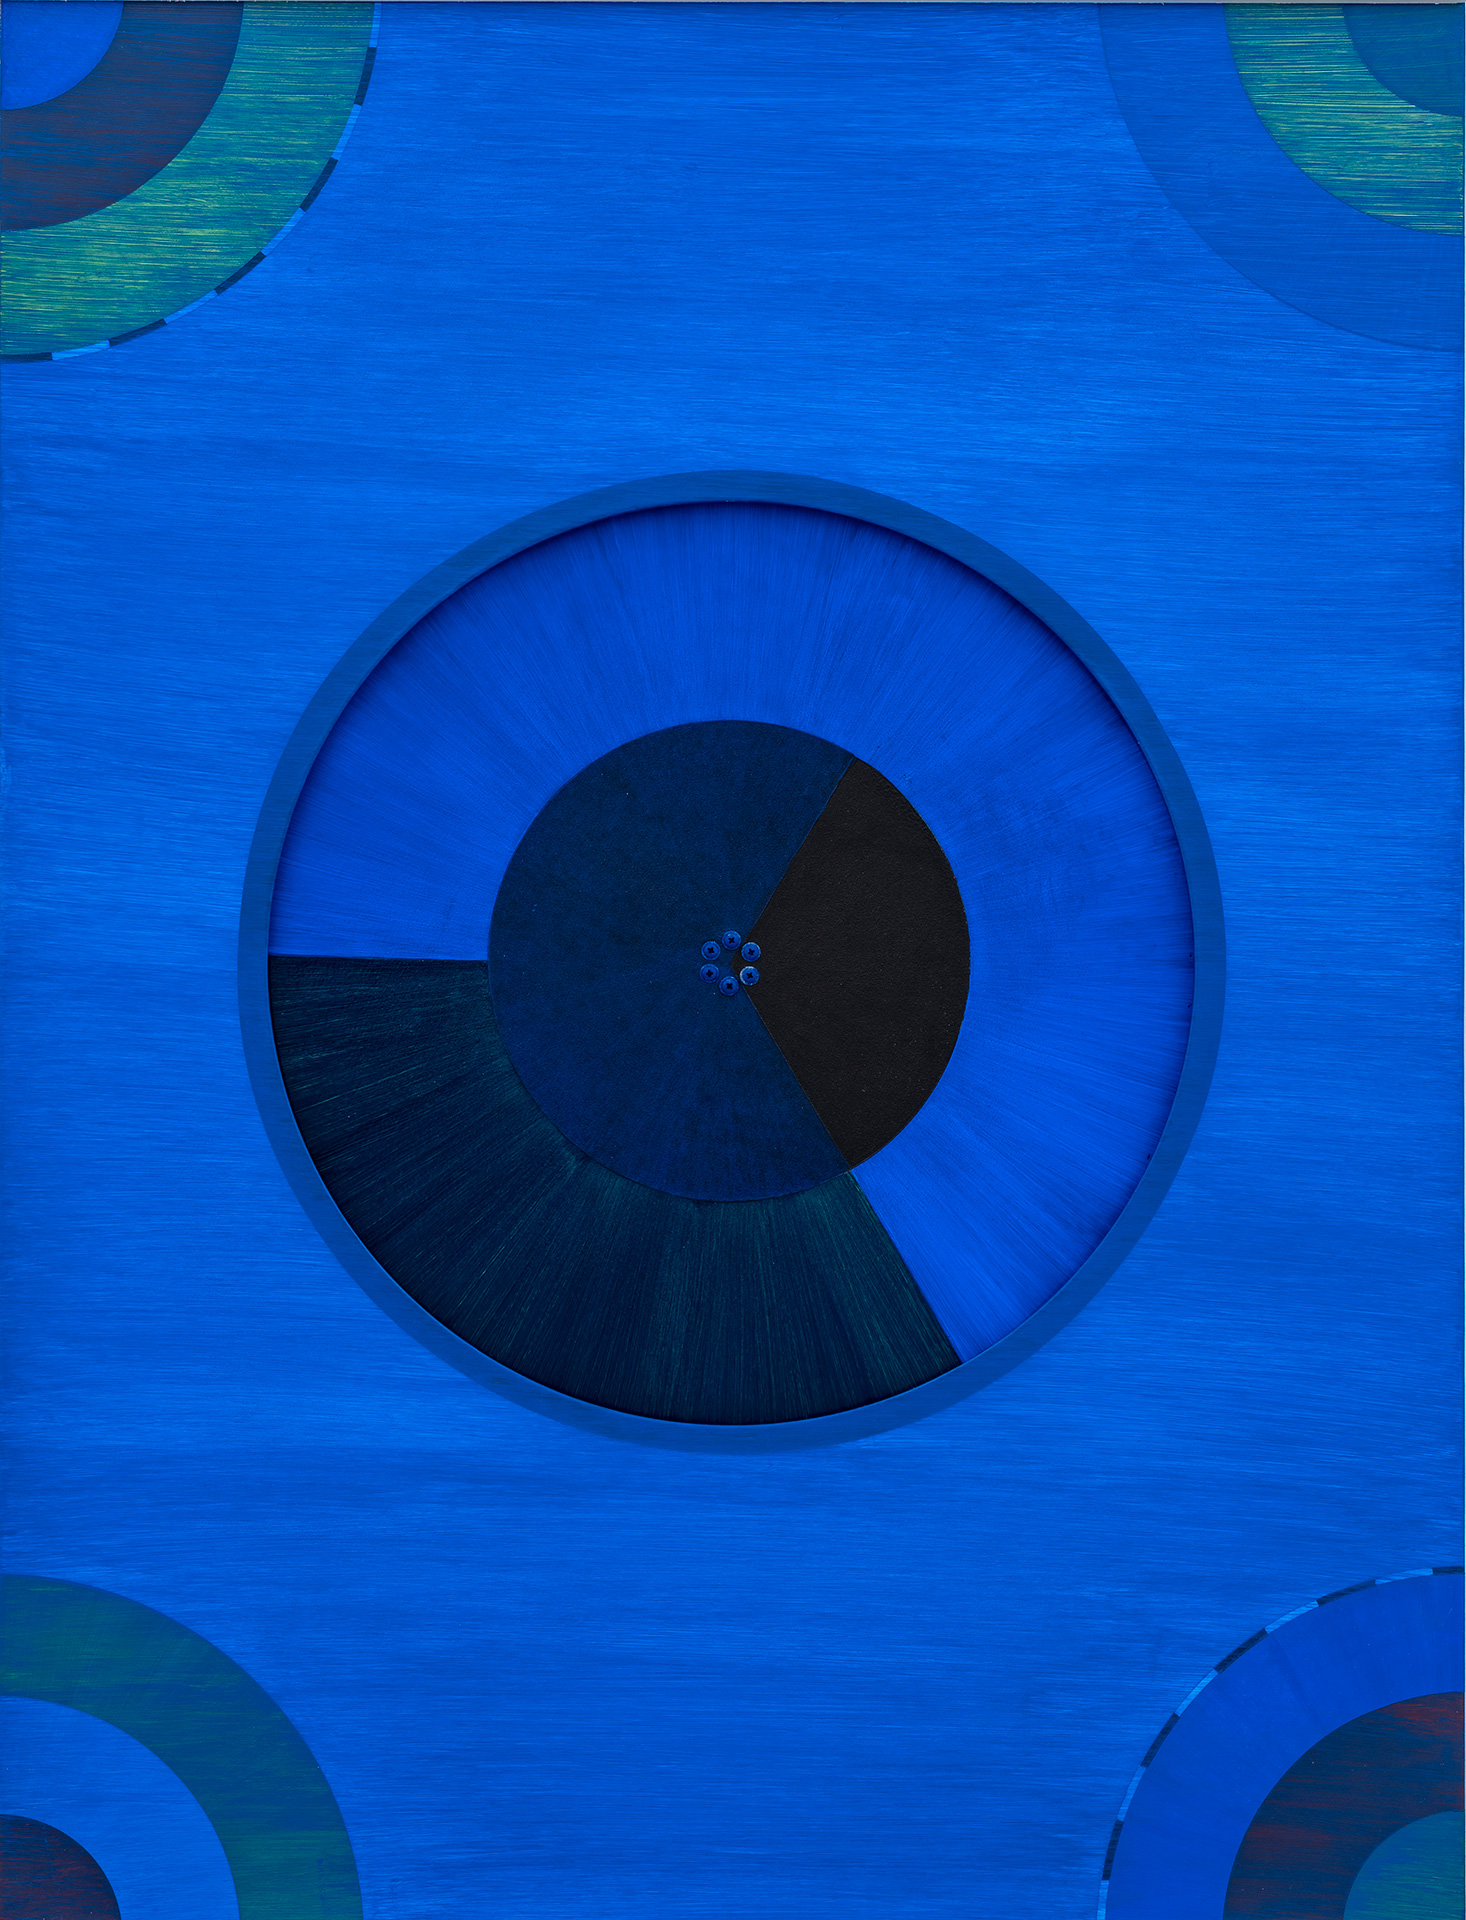 Black and Blue kinetic painting of a single spinning disk made by Madeleine Kelly and shown in Spin out, spun in Milani Gallery